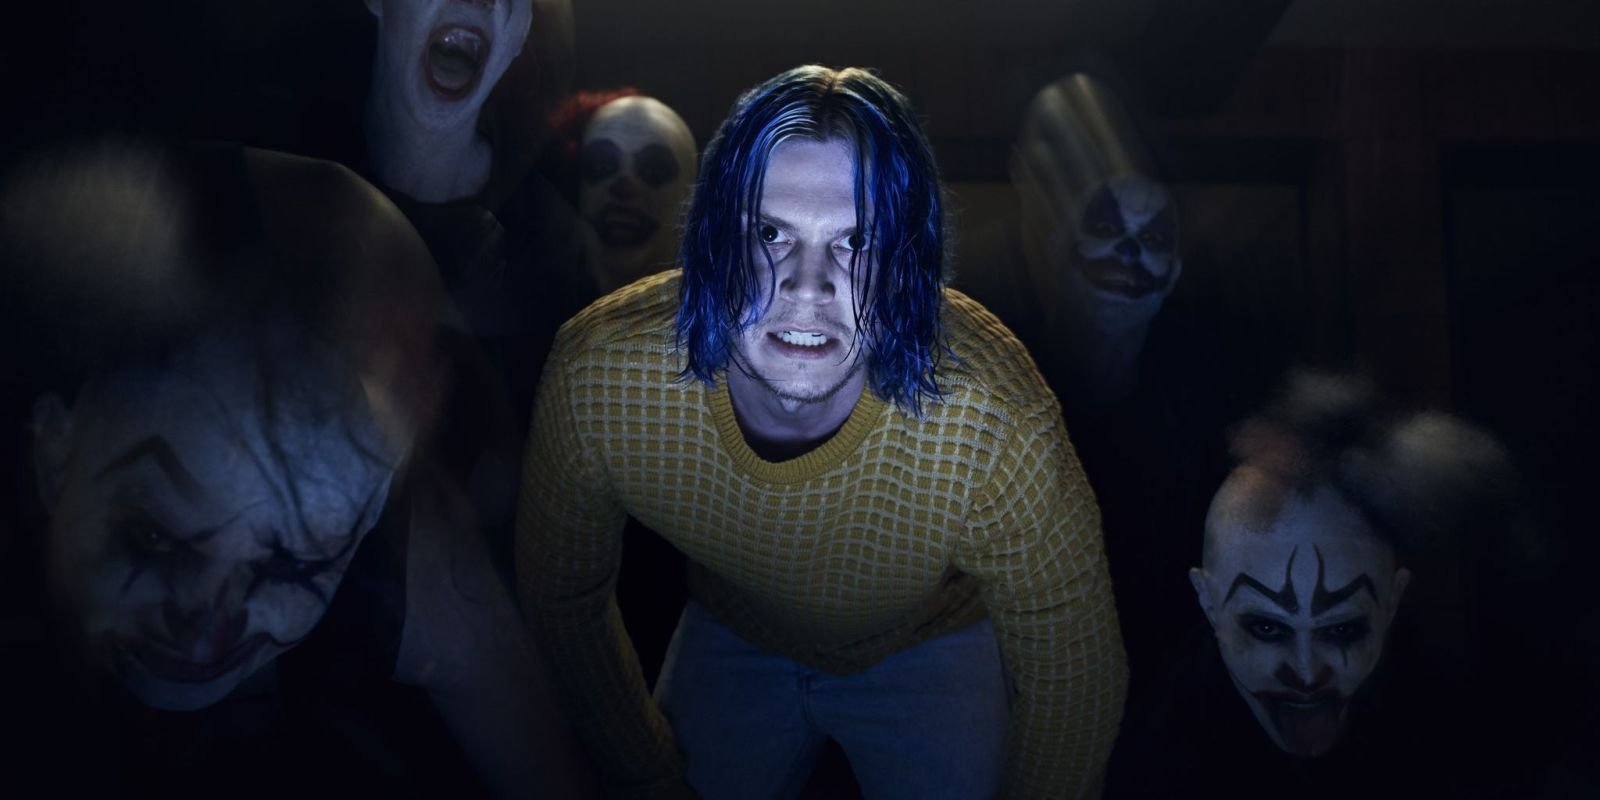 Has American Horror Story season 8's title been revealed?